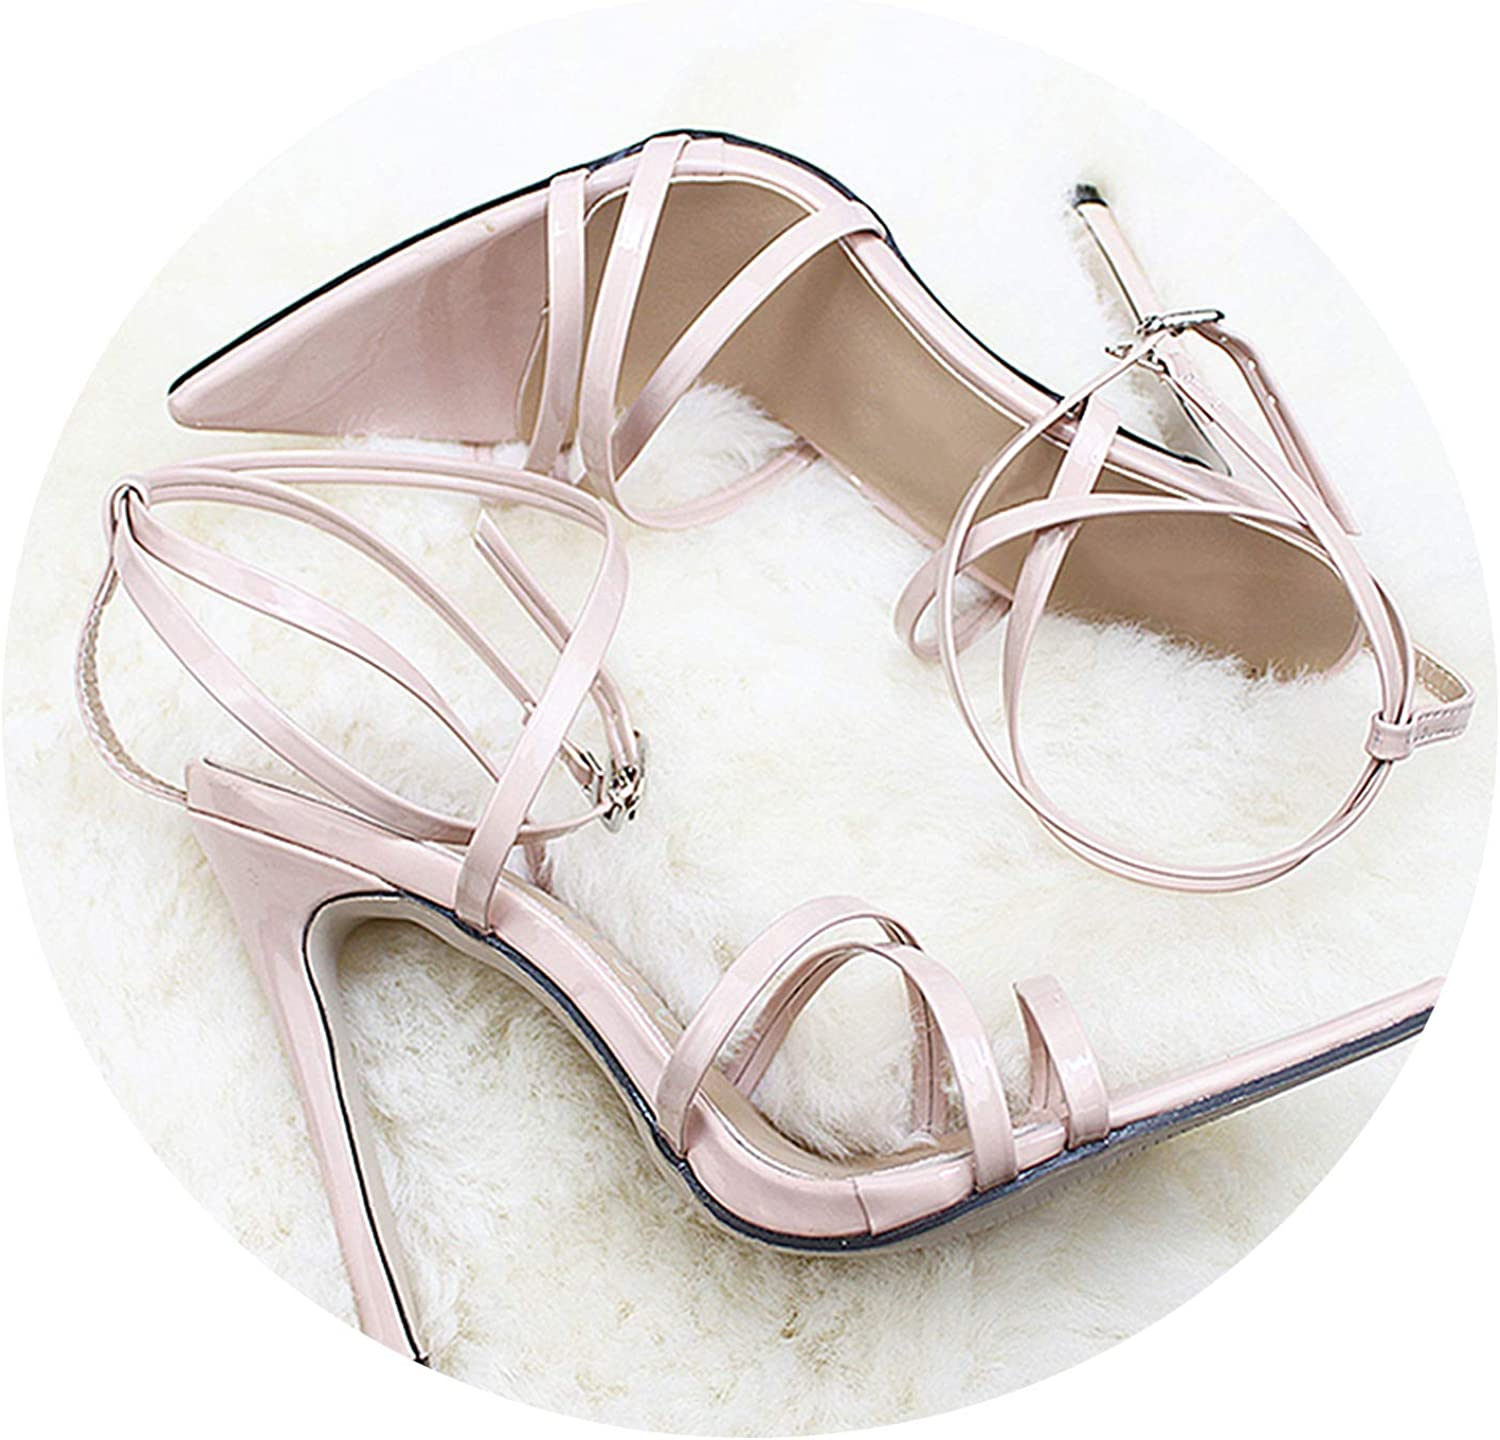 The small cat Women Pumps Ankle Cross Strap Sandals shoes Woman Ladies Pointed Toe High Heels